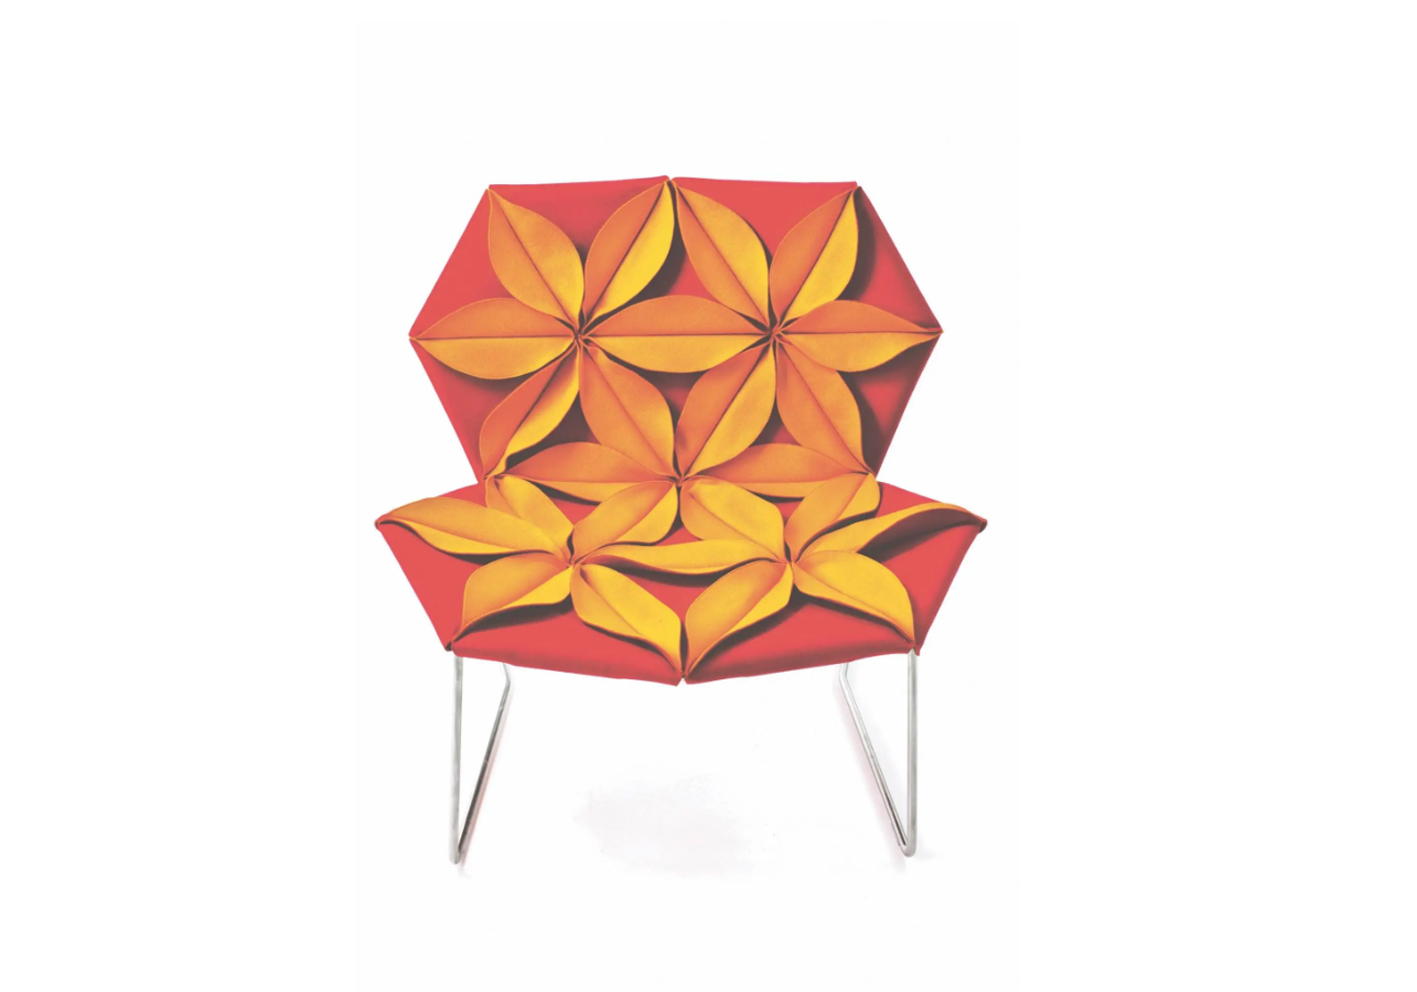 "Equally alluring is Moroso's flamboyantly flowery Antibodi armchair. Its ""petals"" are made from double-sided materials — felt/baize or baize/leather — to create structural upholstery fixed to a stainless-steel frame."